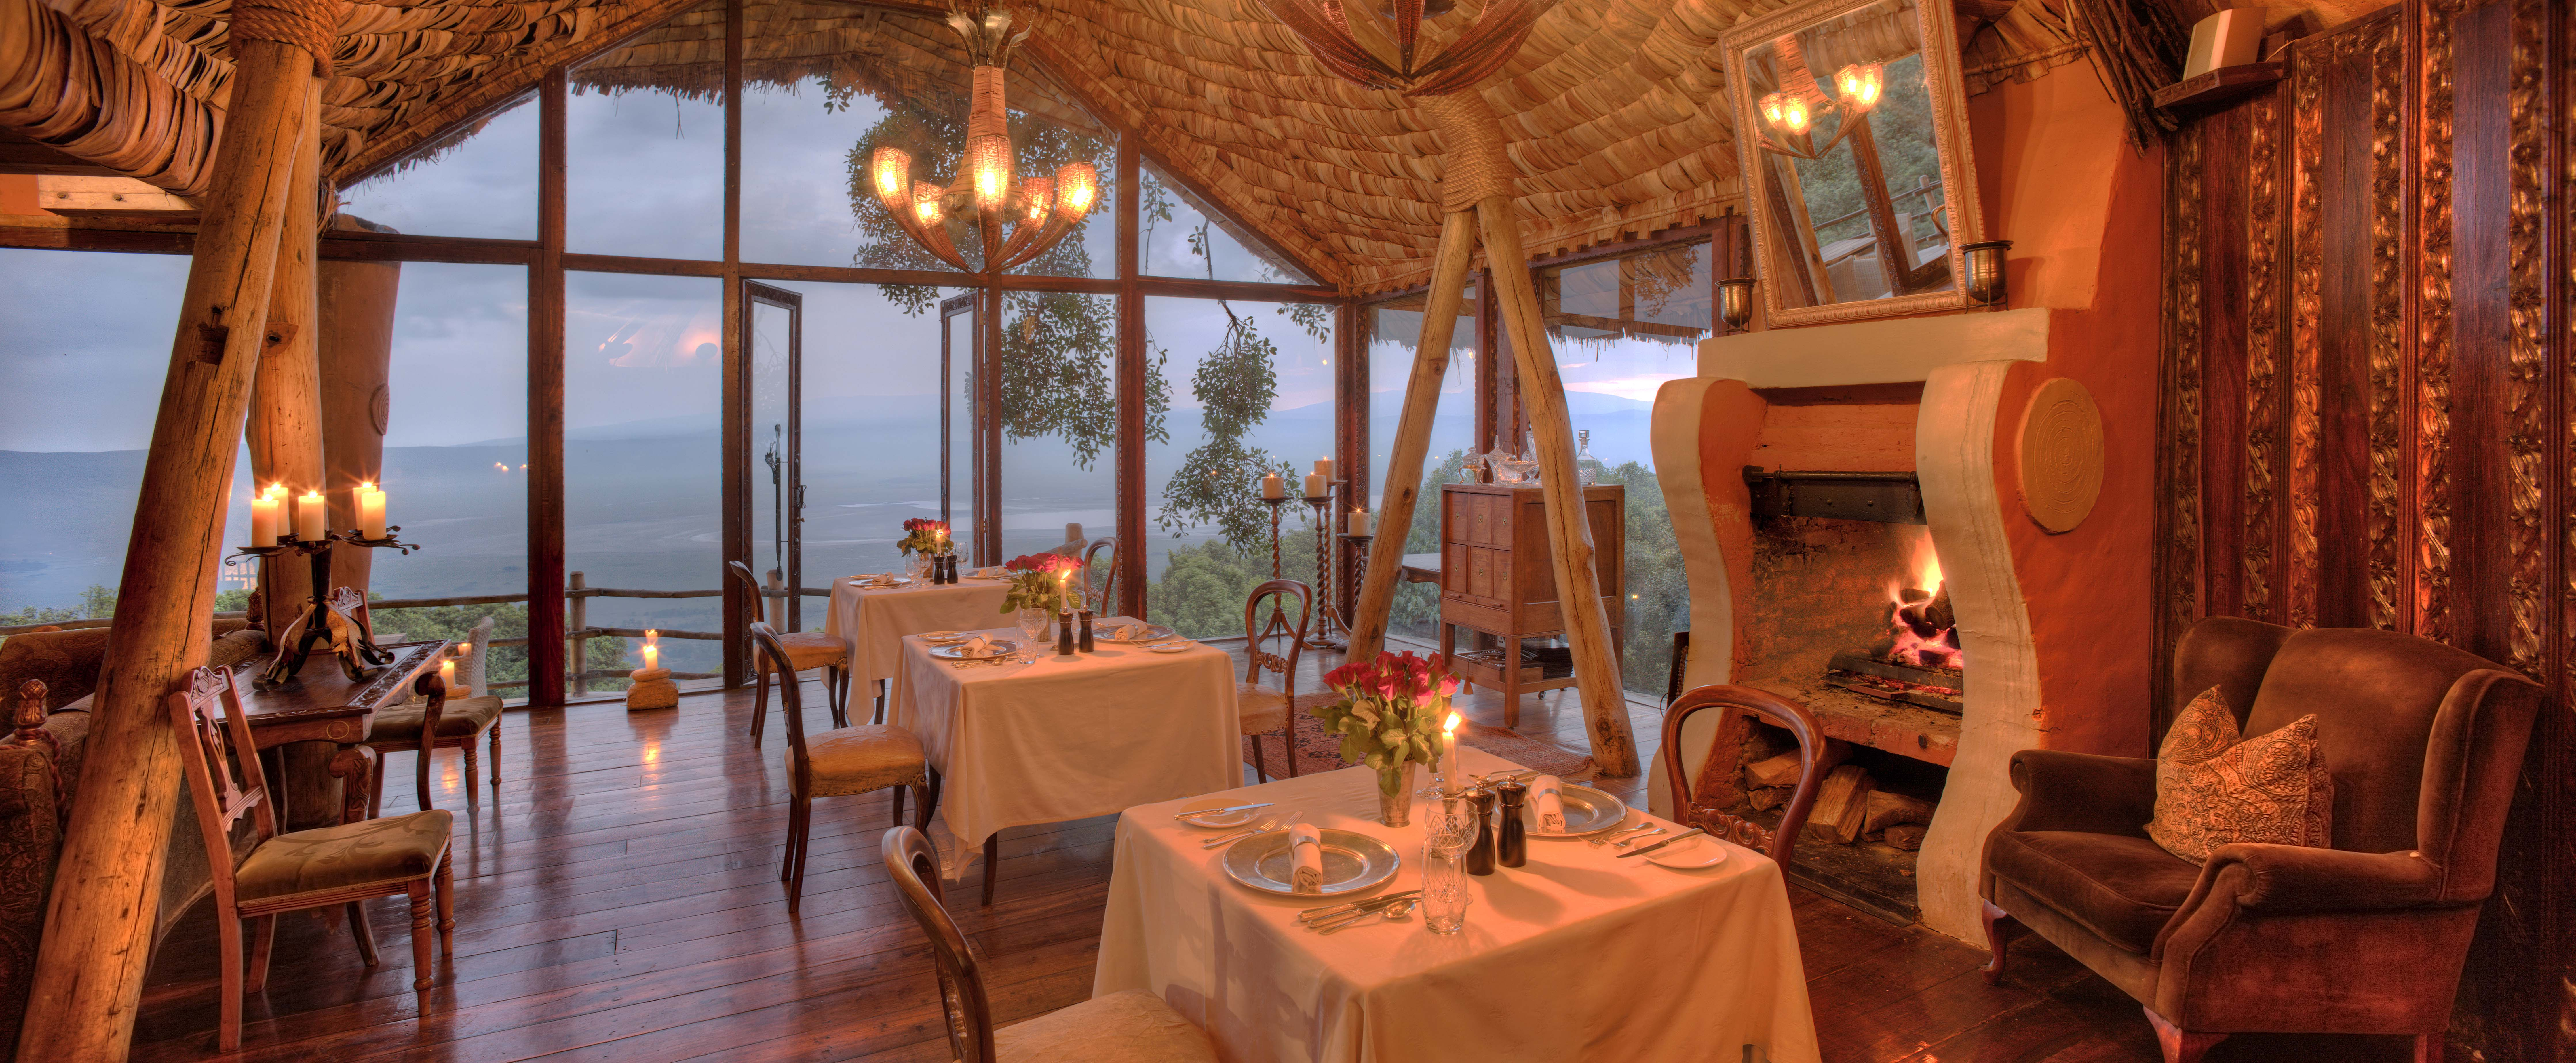 Ngorongoro Crater lodge_guest area2